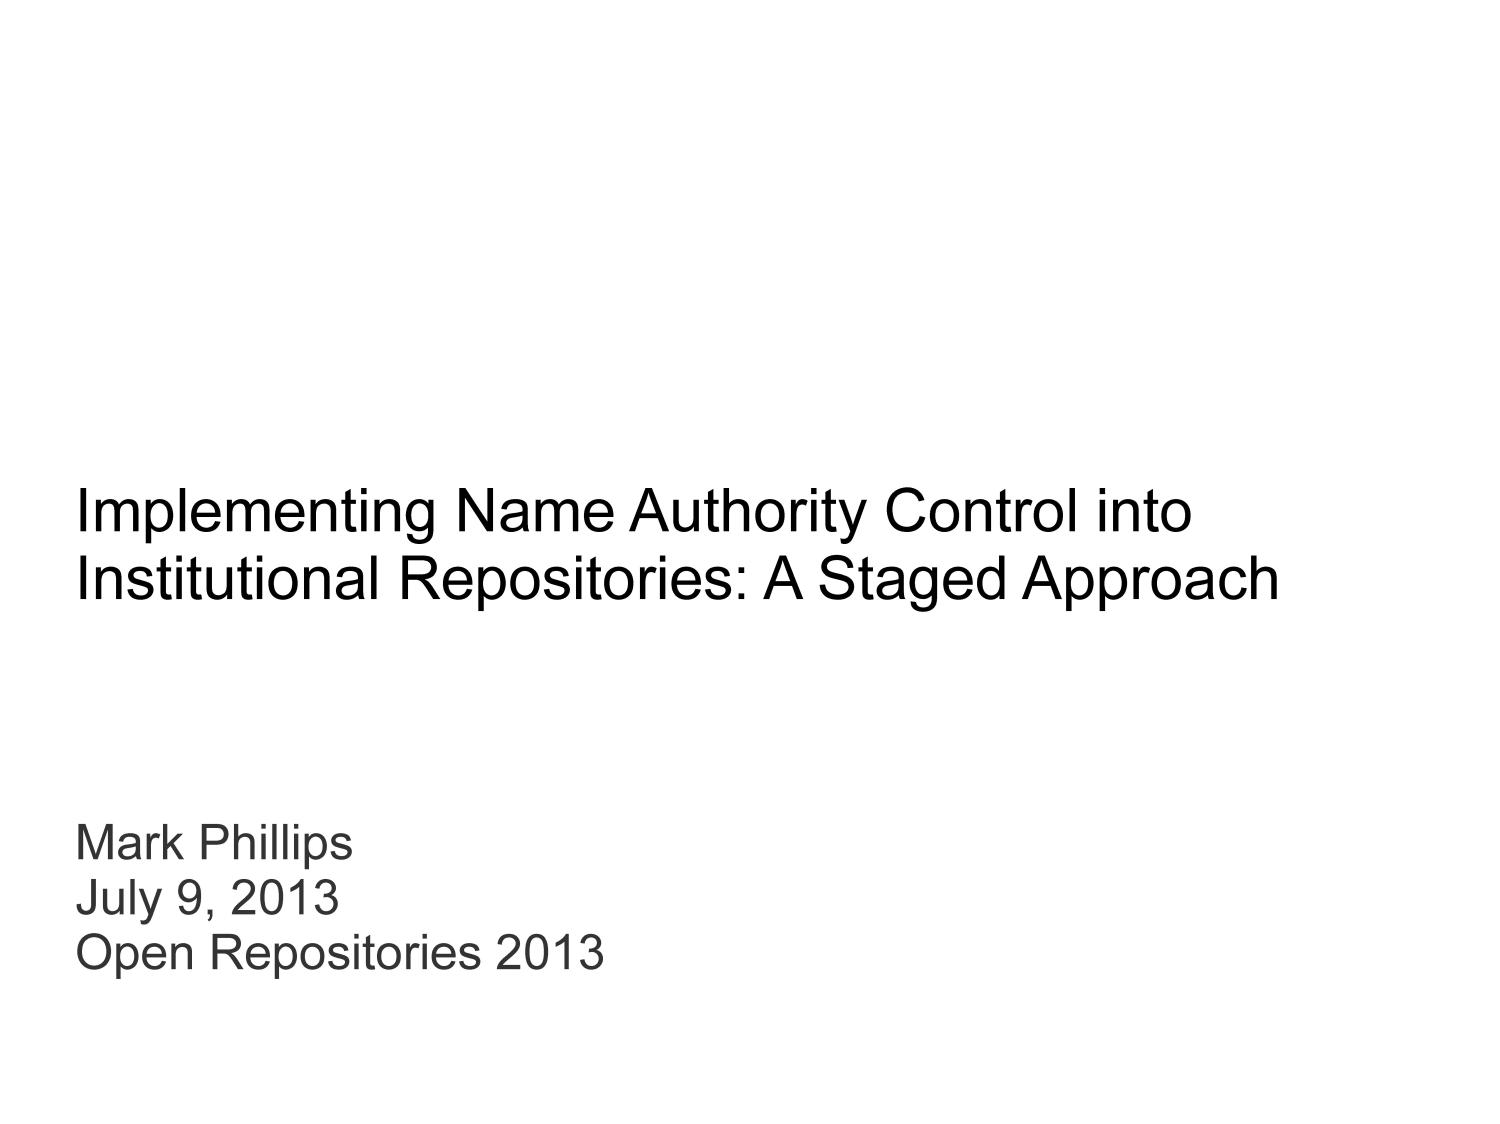 Implementing Name Authority Control into Institutional Repositories: A Staged Approach                                                                                                      [Sequence #]: 1 of 72